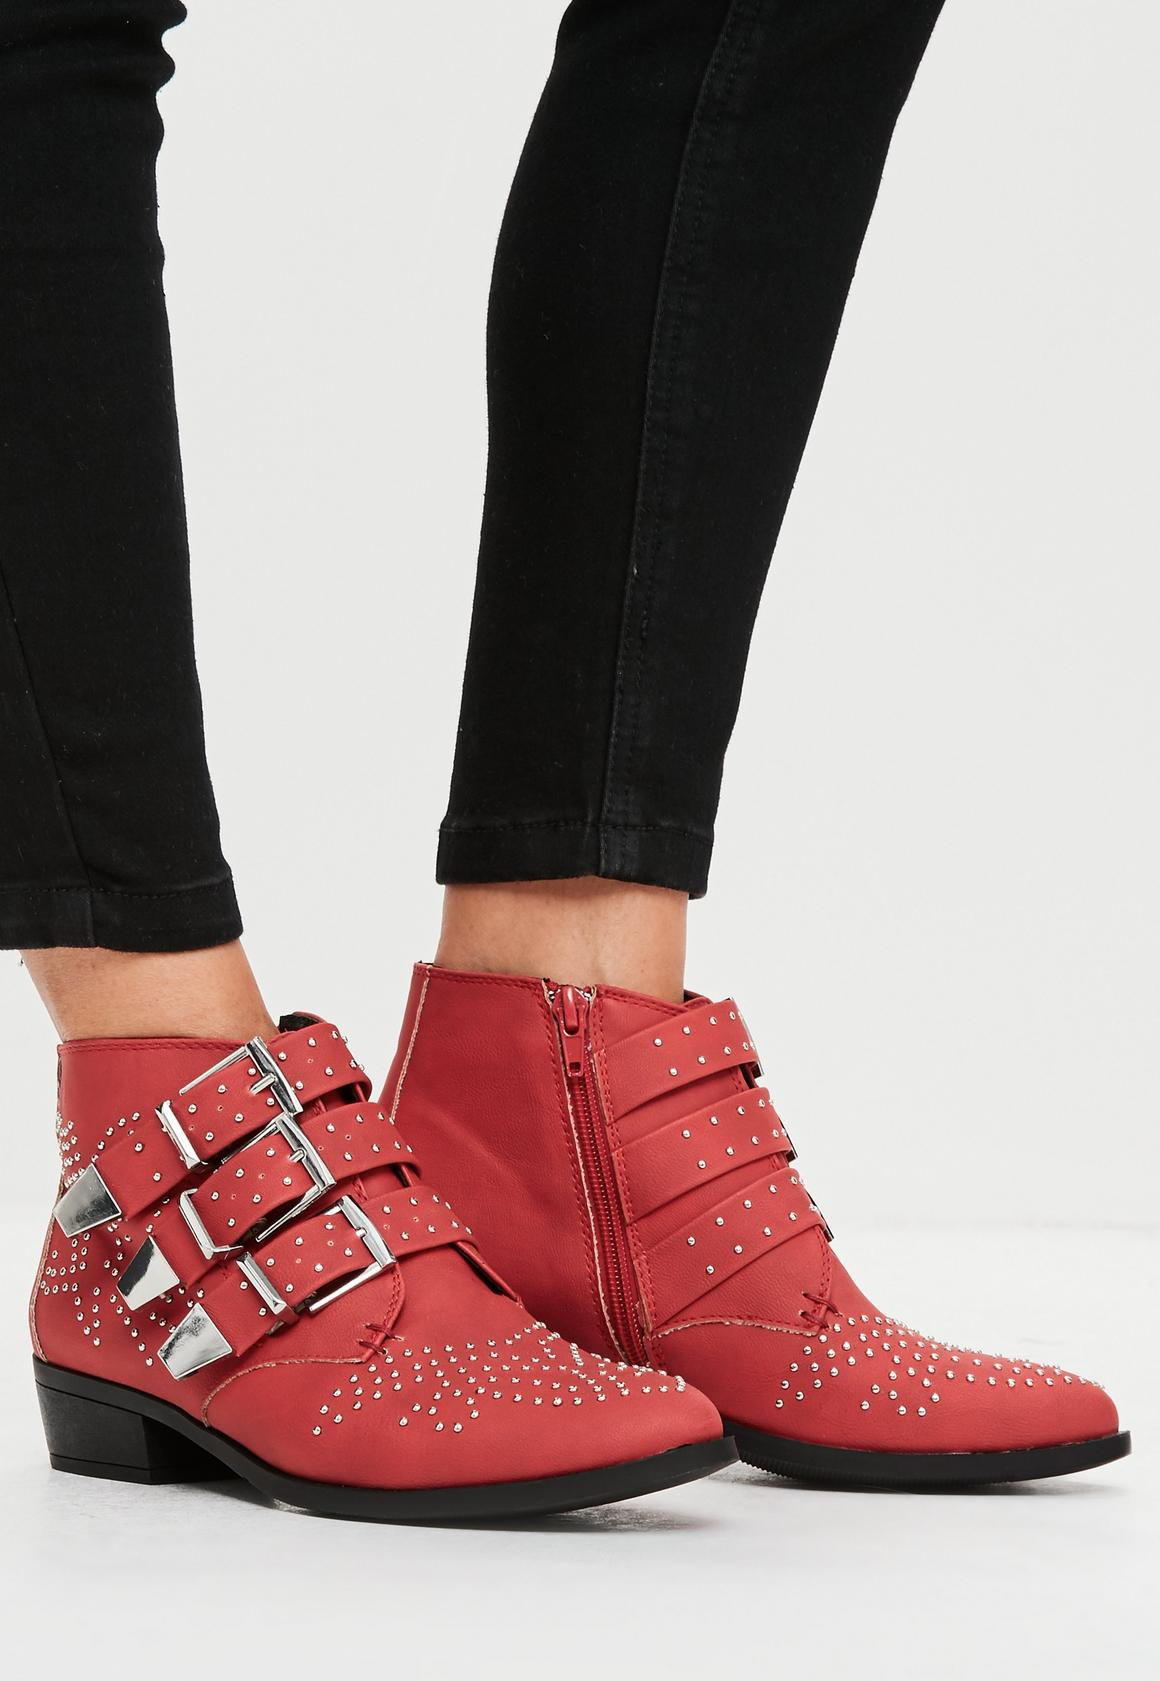 bottines rouges à boucles et clous | missguided